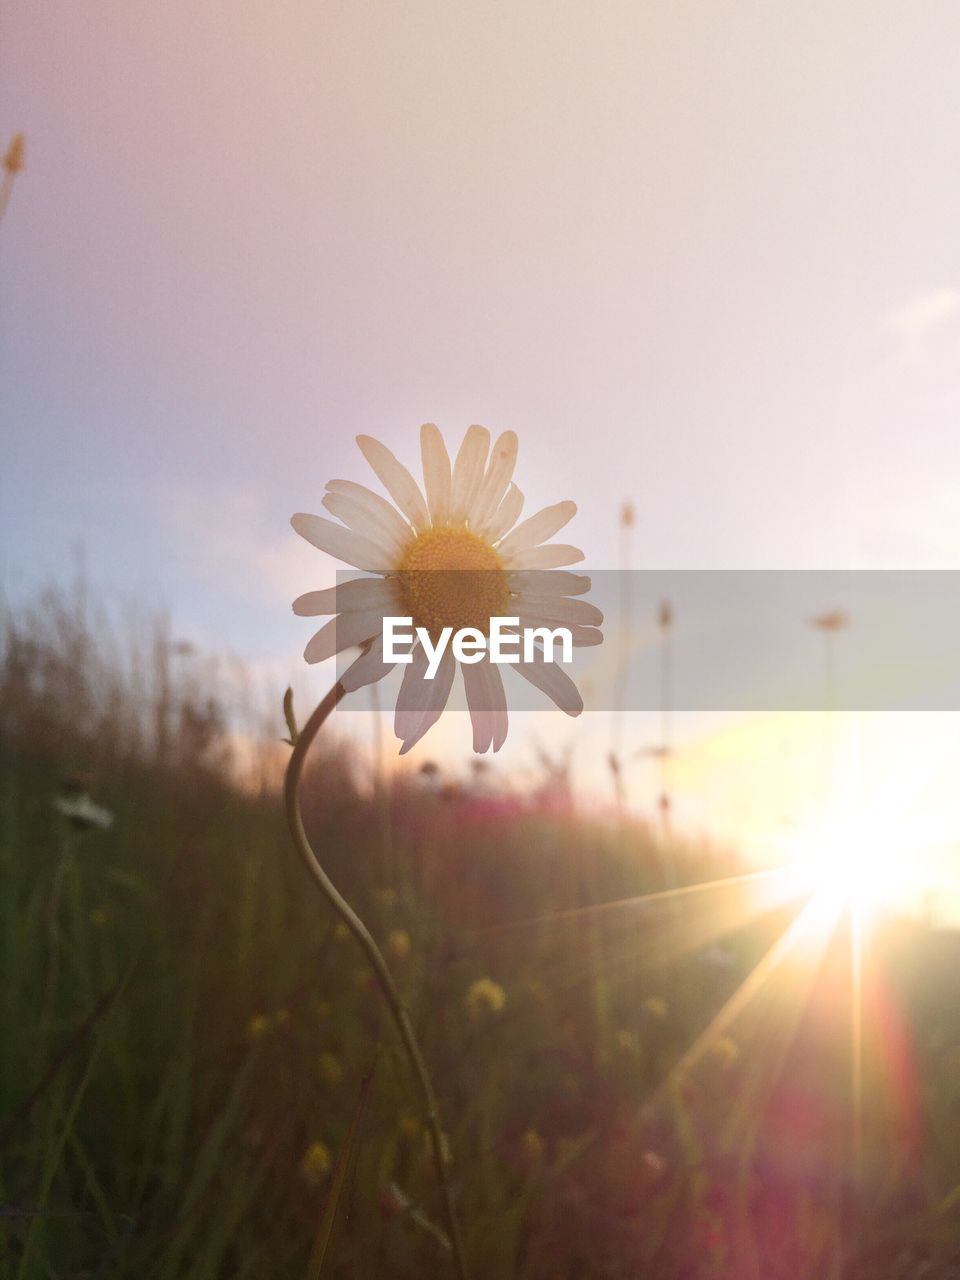 flower, nature, growth, beauty in nature, petal, fragility, sunset, sun, freshness, flower head, field, cosmos flower, plant, no people, outdoors, sunlight, blooming, grass, close-up, day, sky